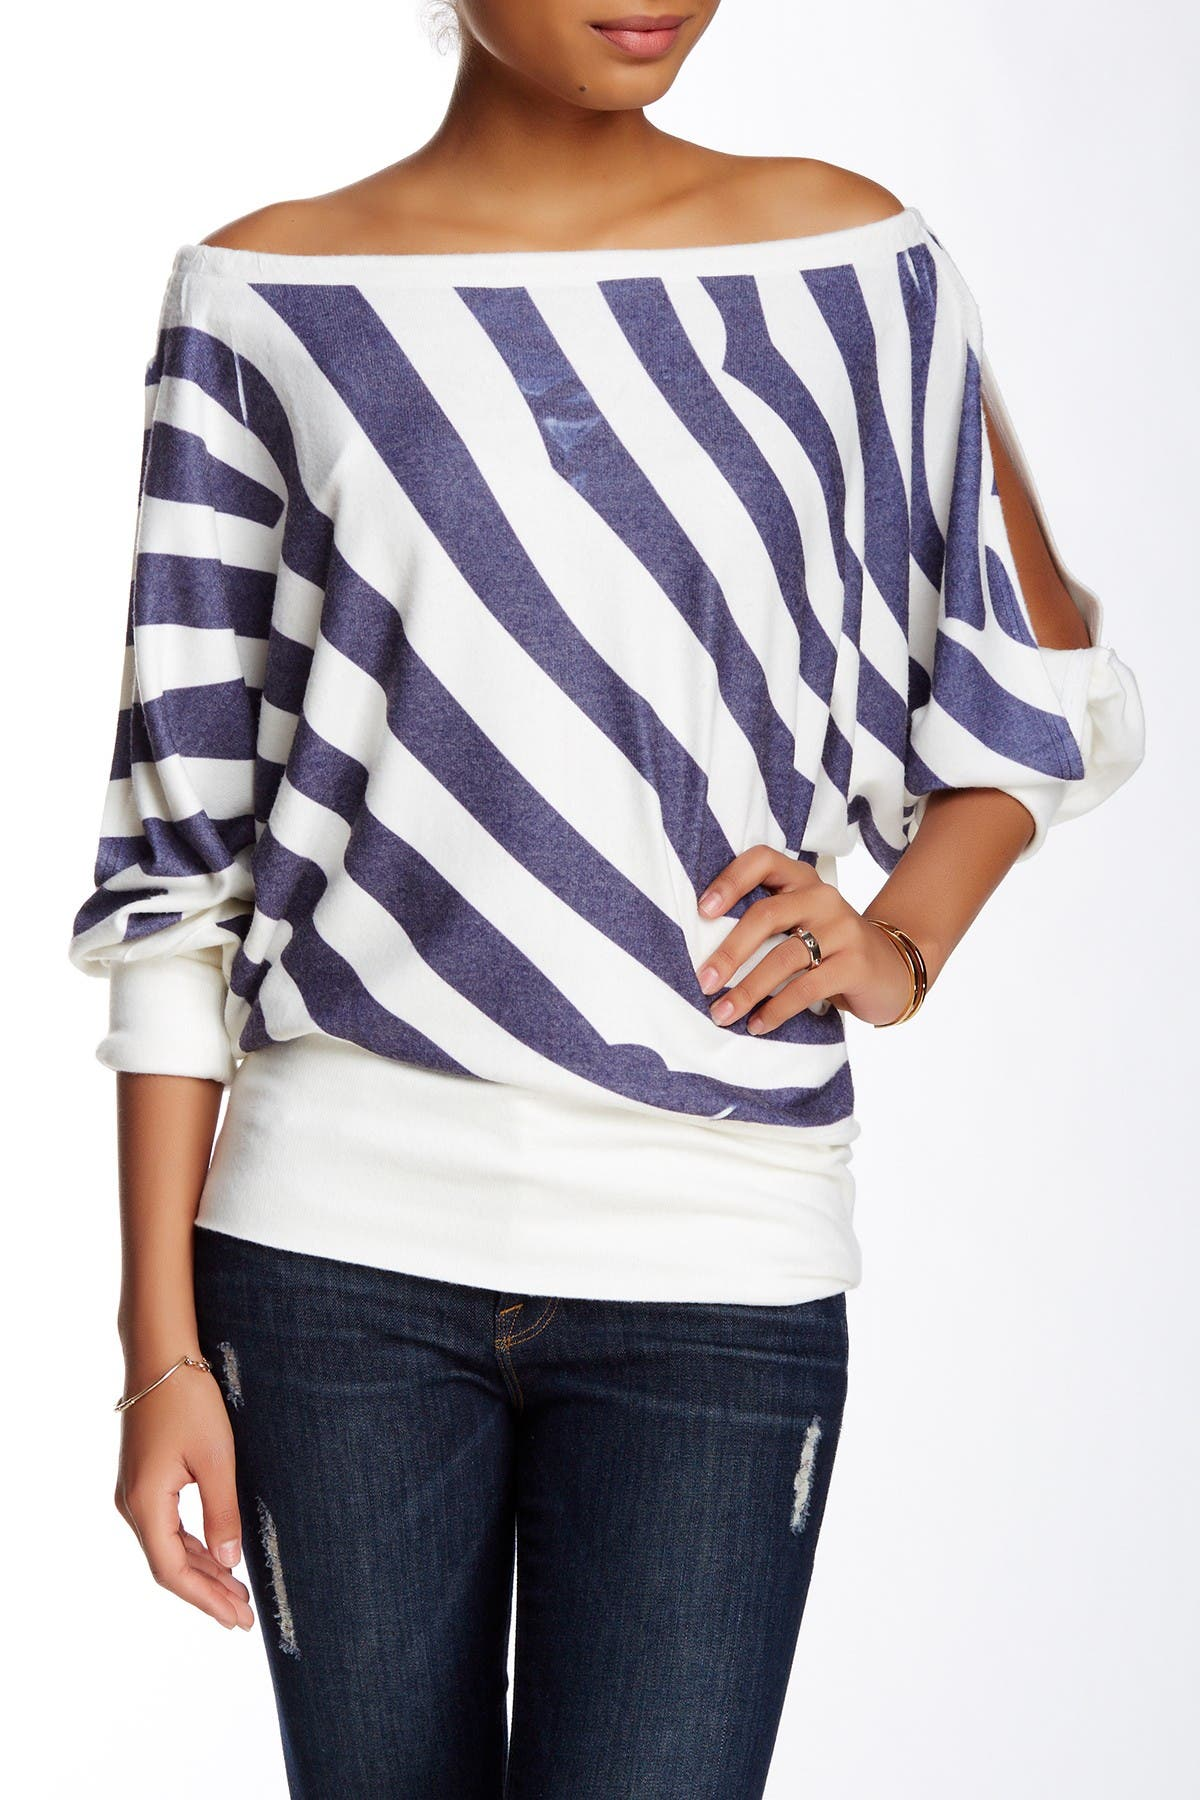 Image of Go Couture Printed Off-the-Shoulder Dolman Sweater